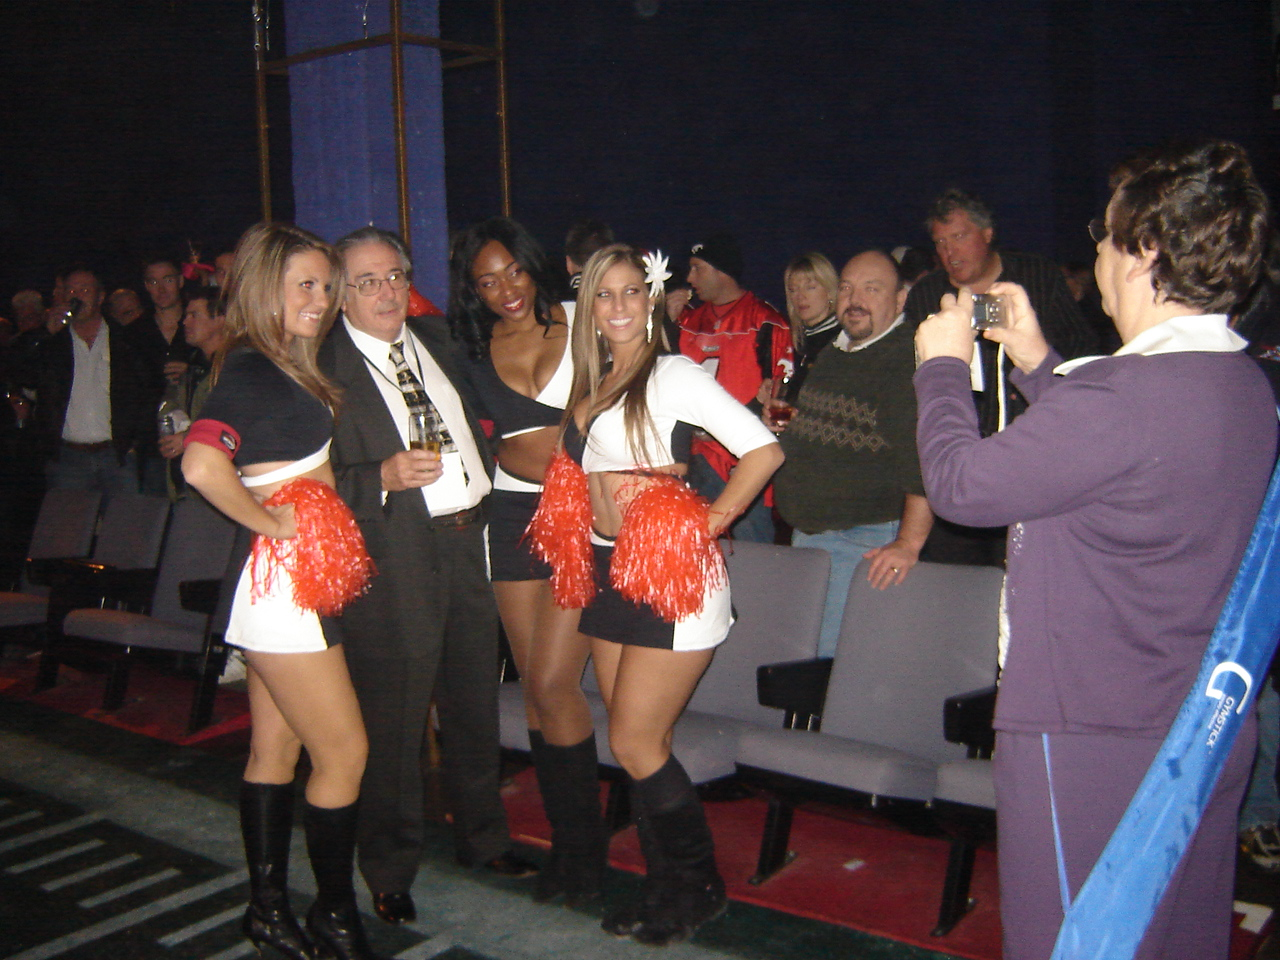 nov.08_-_montreal_-_maxim_grey_cup_party_035